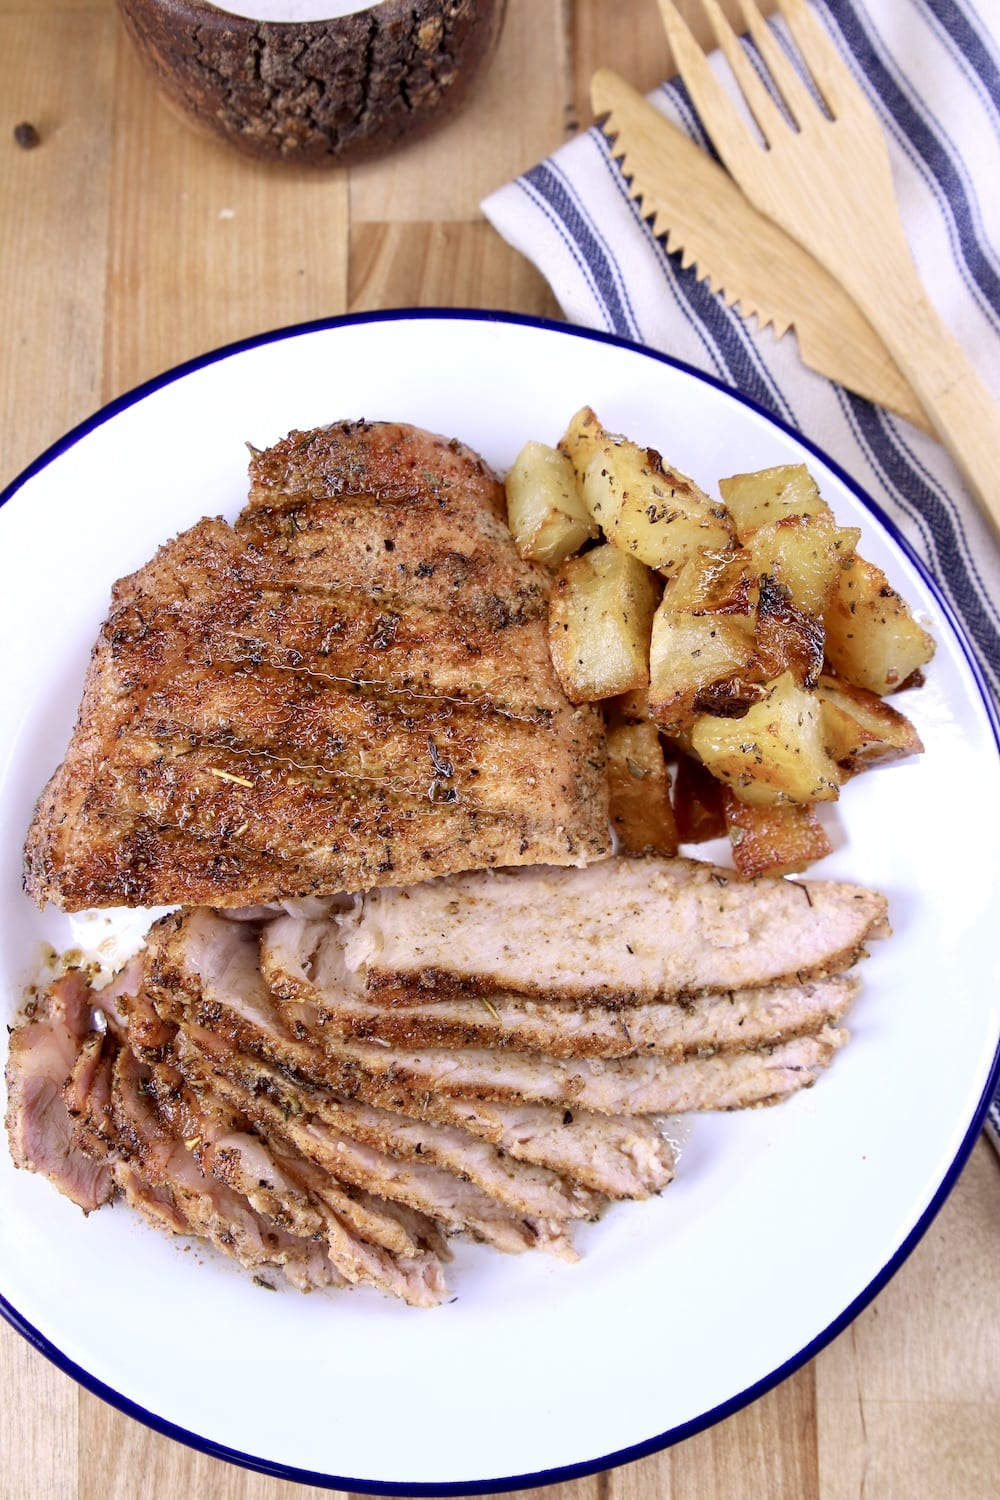 Grilled pork chop, partially sliced on a plate with roasted potatoes